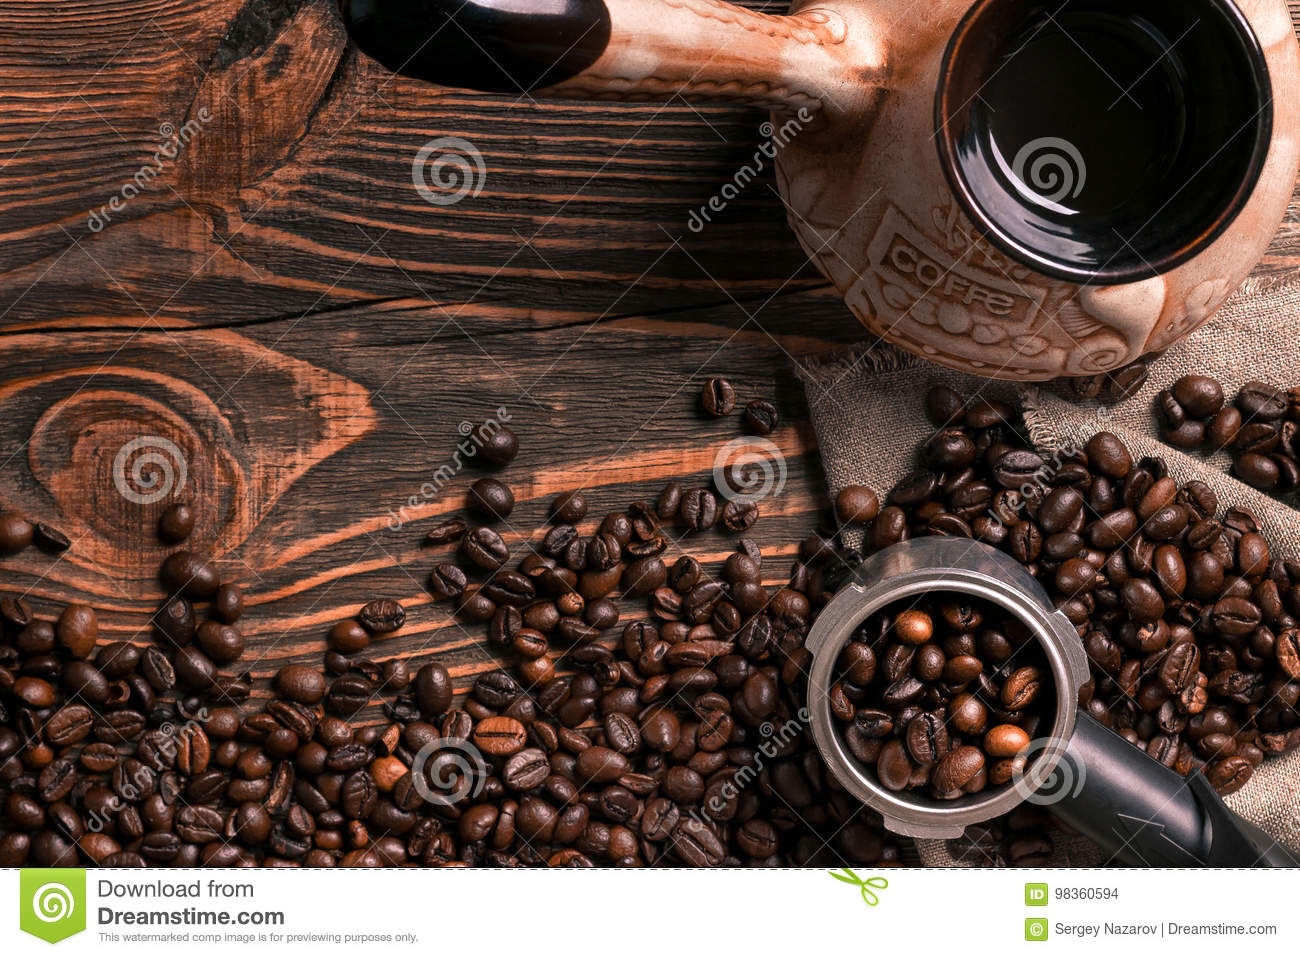 Old coffee cup and turk with roasted beans on a wooden table.